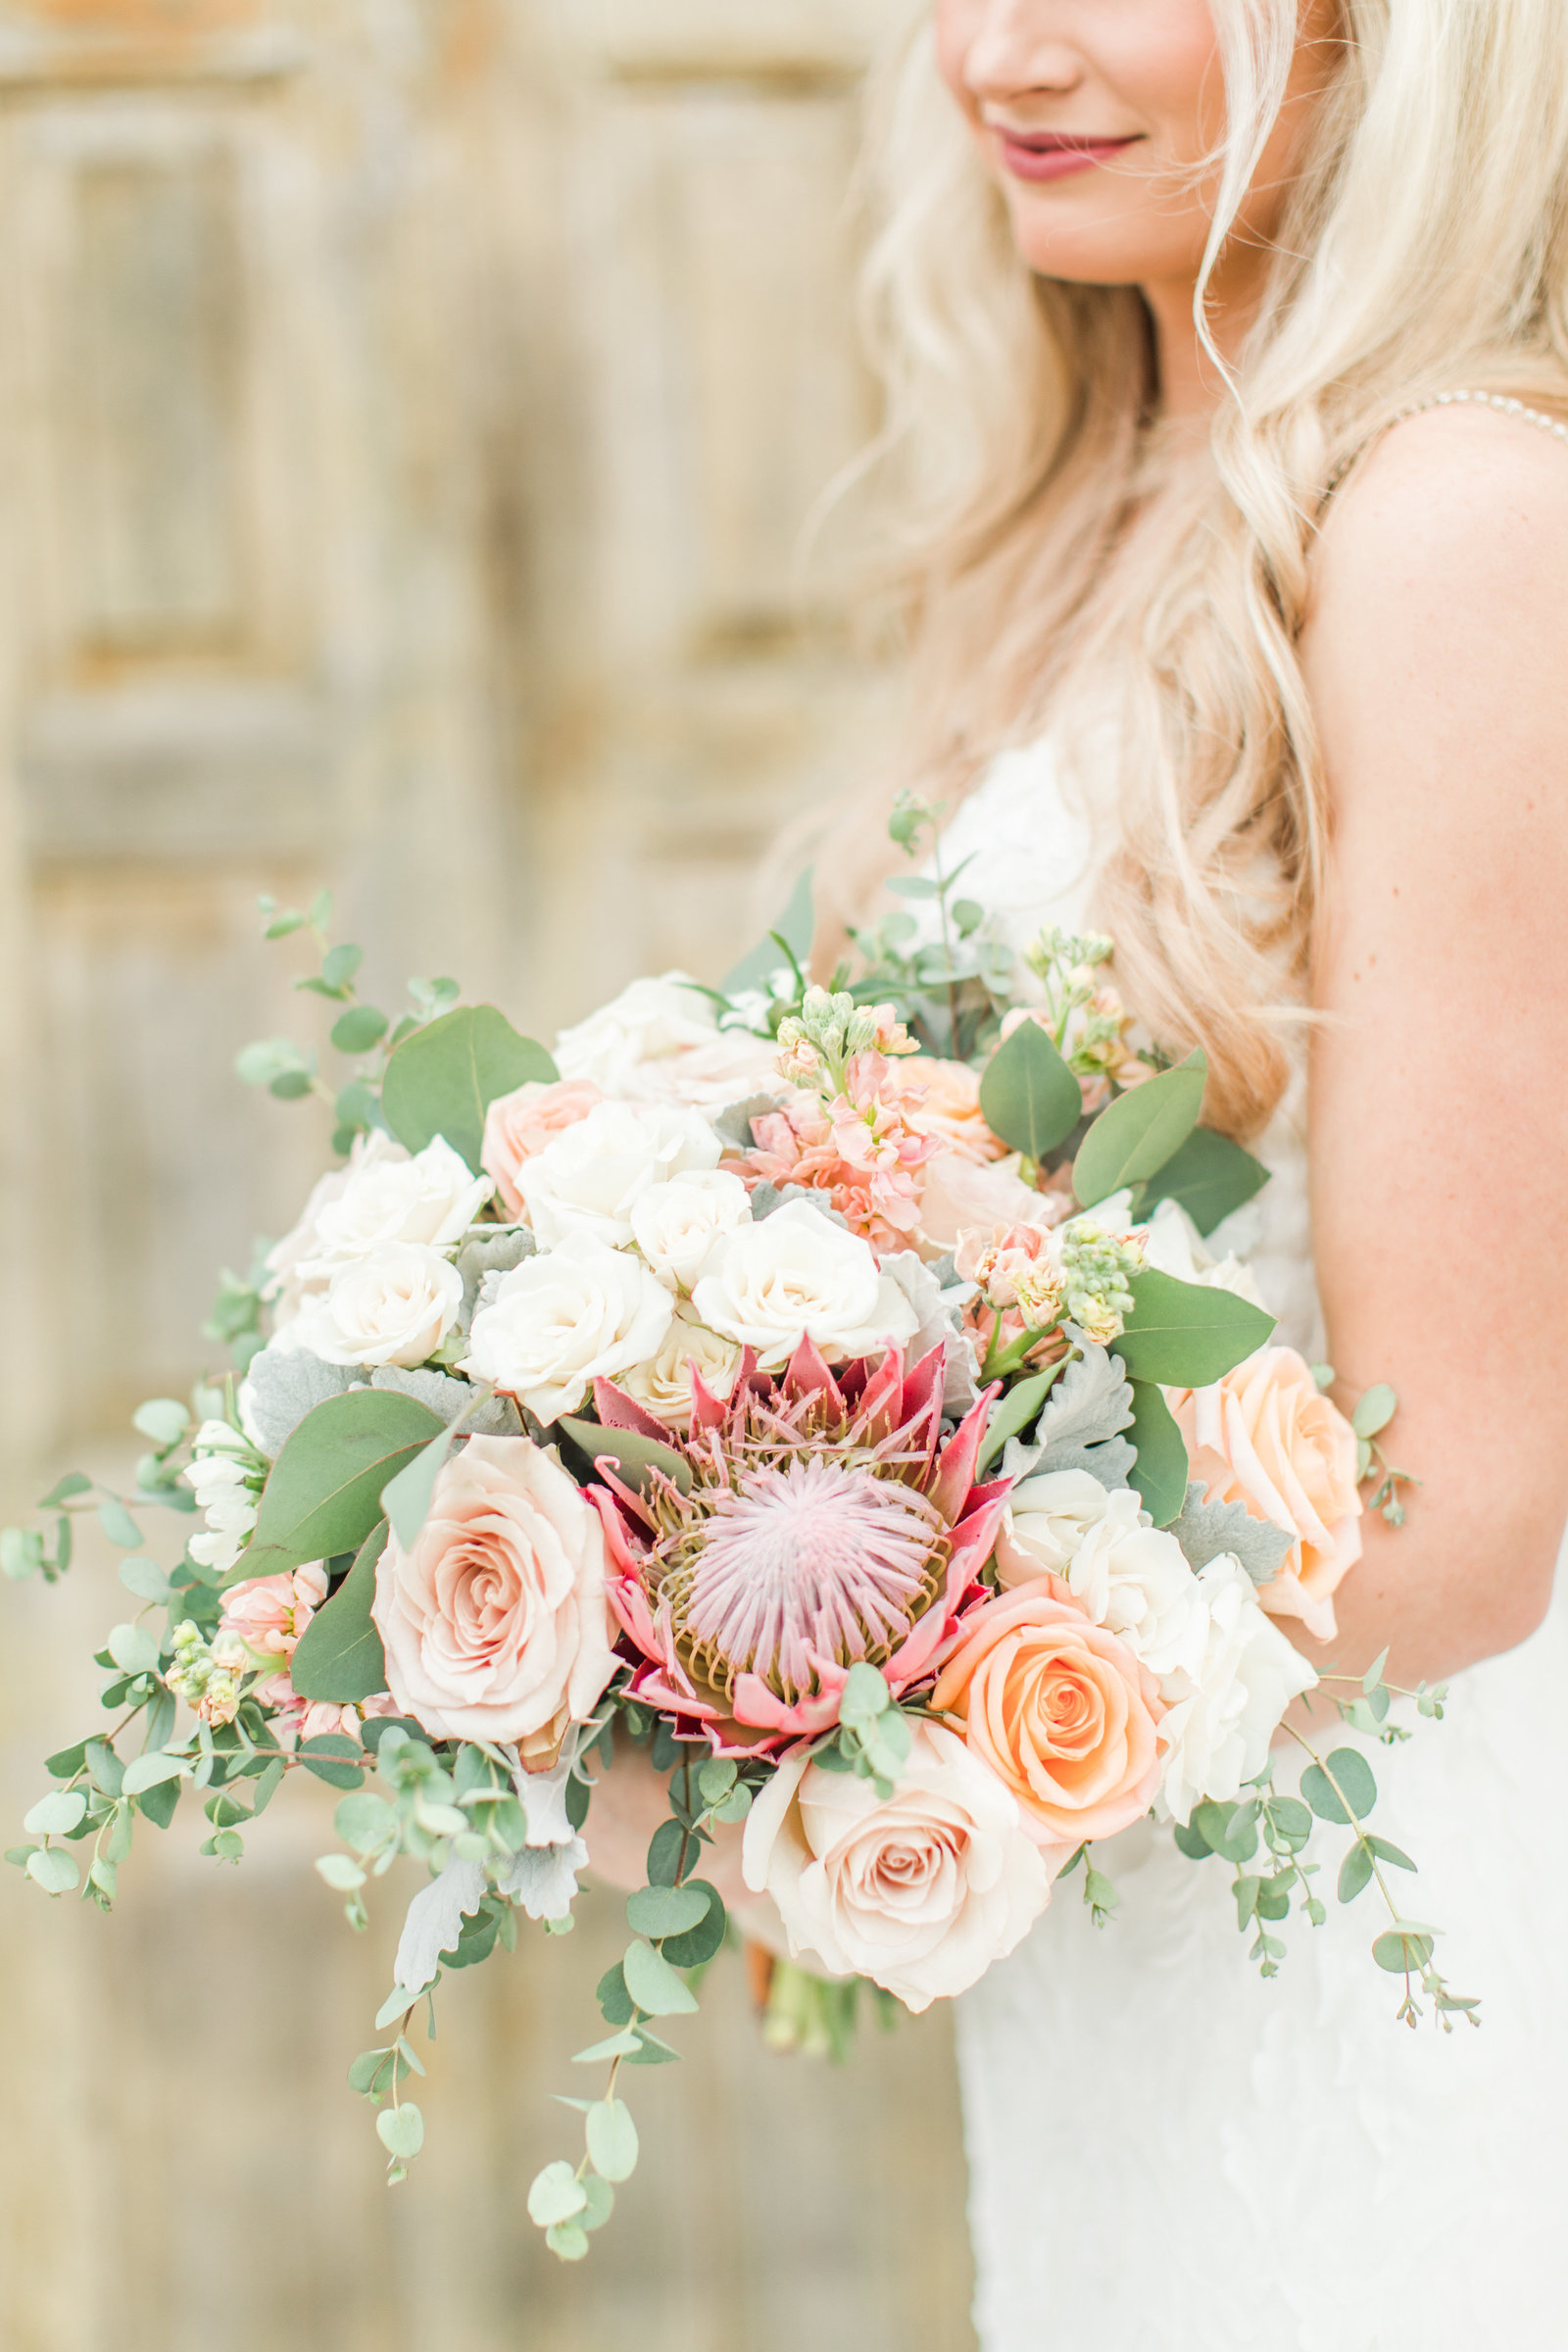 Bouquet with peach roses and pink proteas